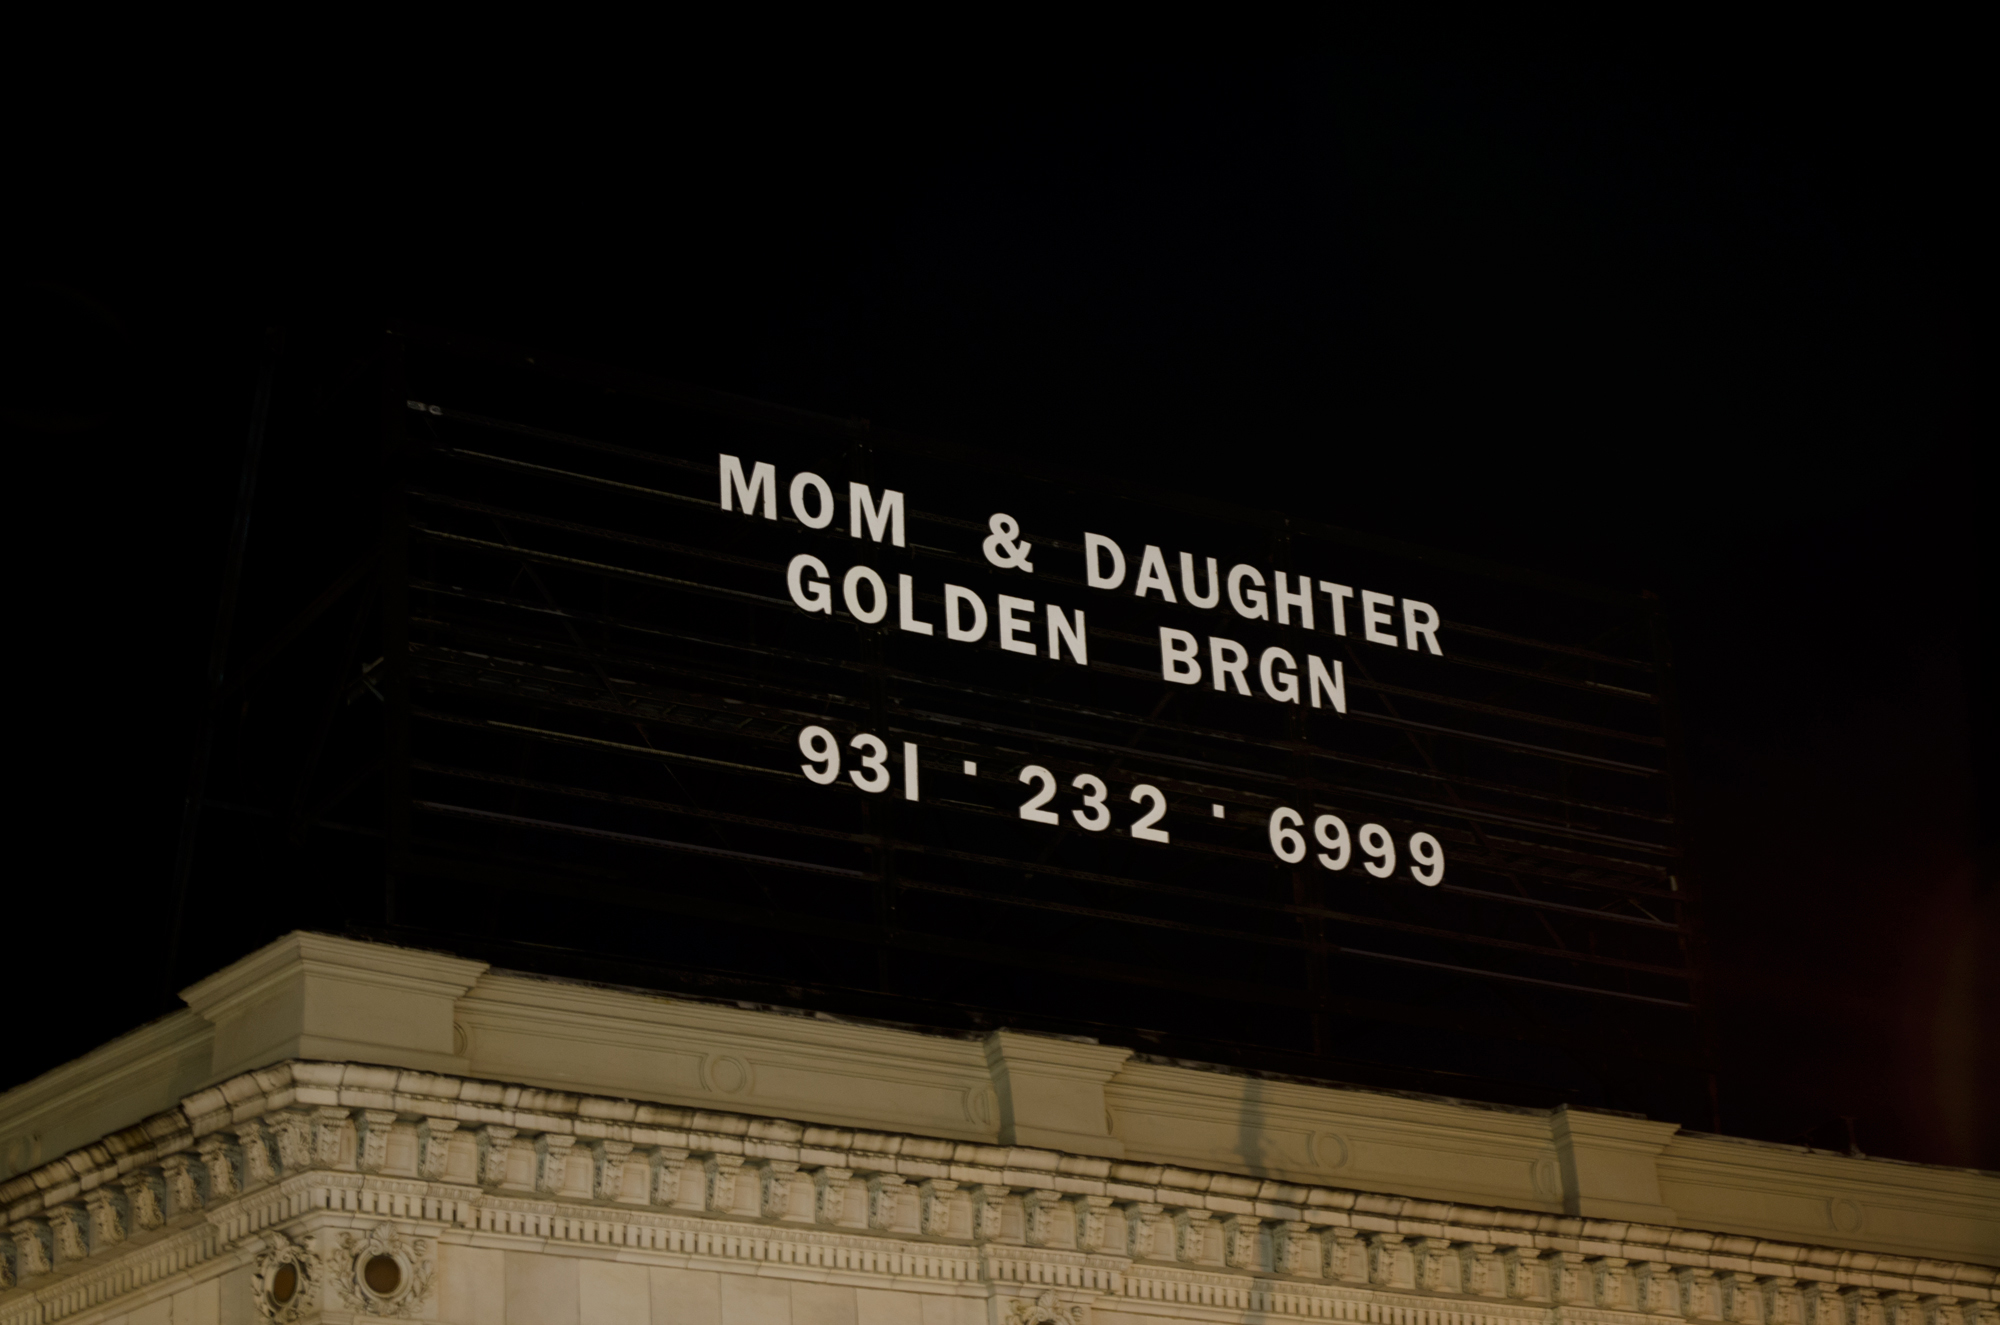 Mom & Daughter Golden Brgn